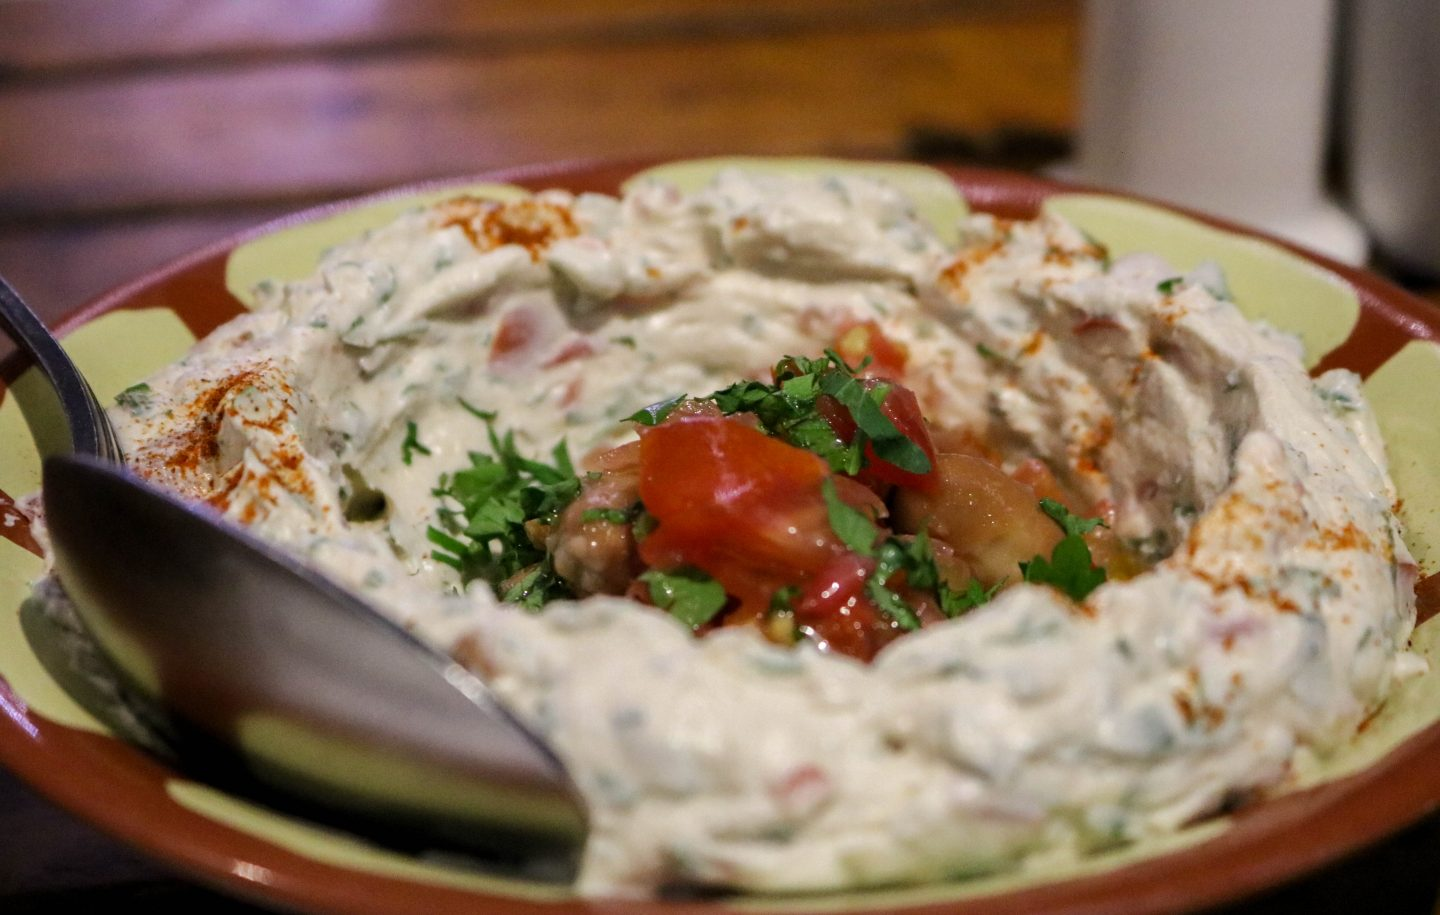 Hummus Beiruti Mezza House - Top 10 Things to do in Dubai - The Lifestyle Enthusiast Blog